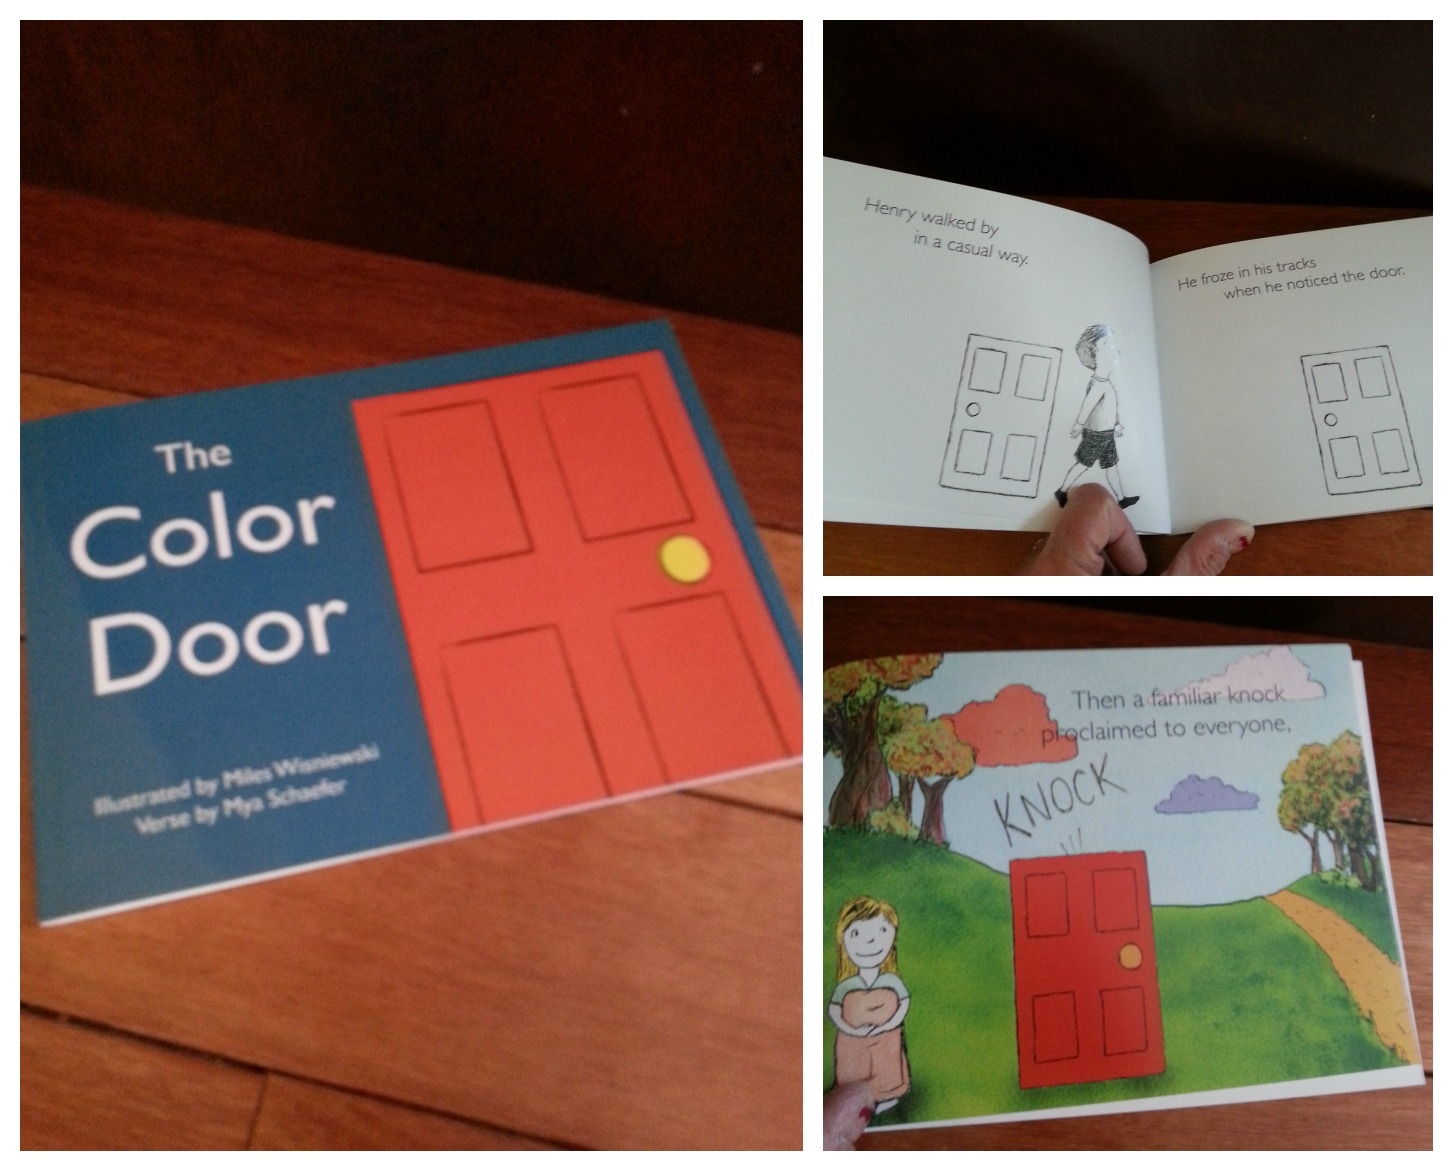 The Color Door